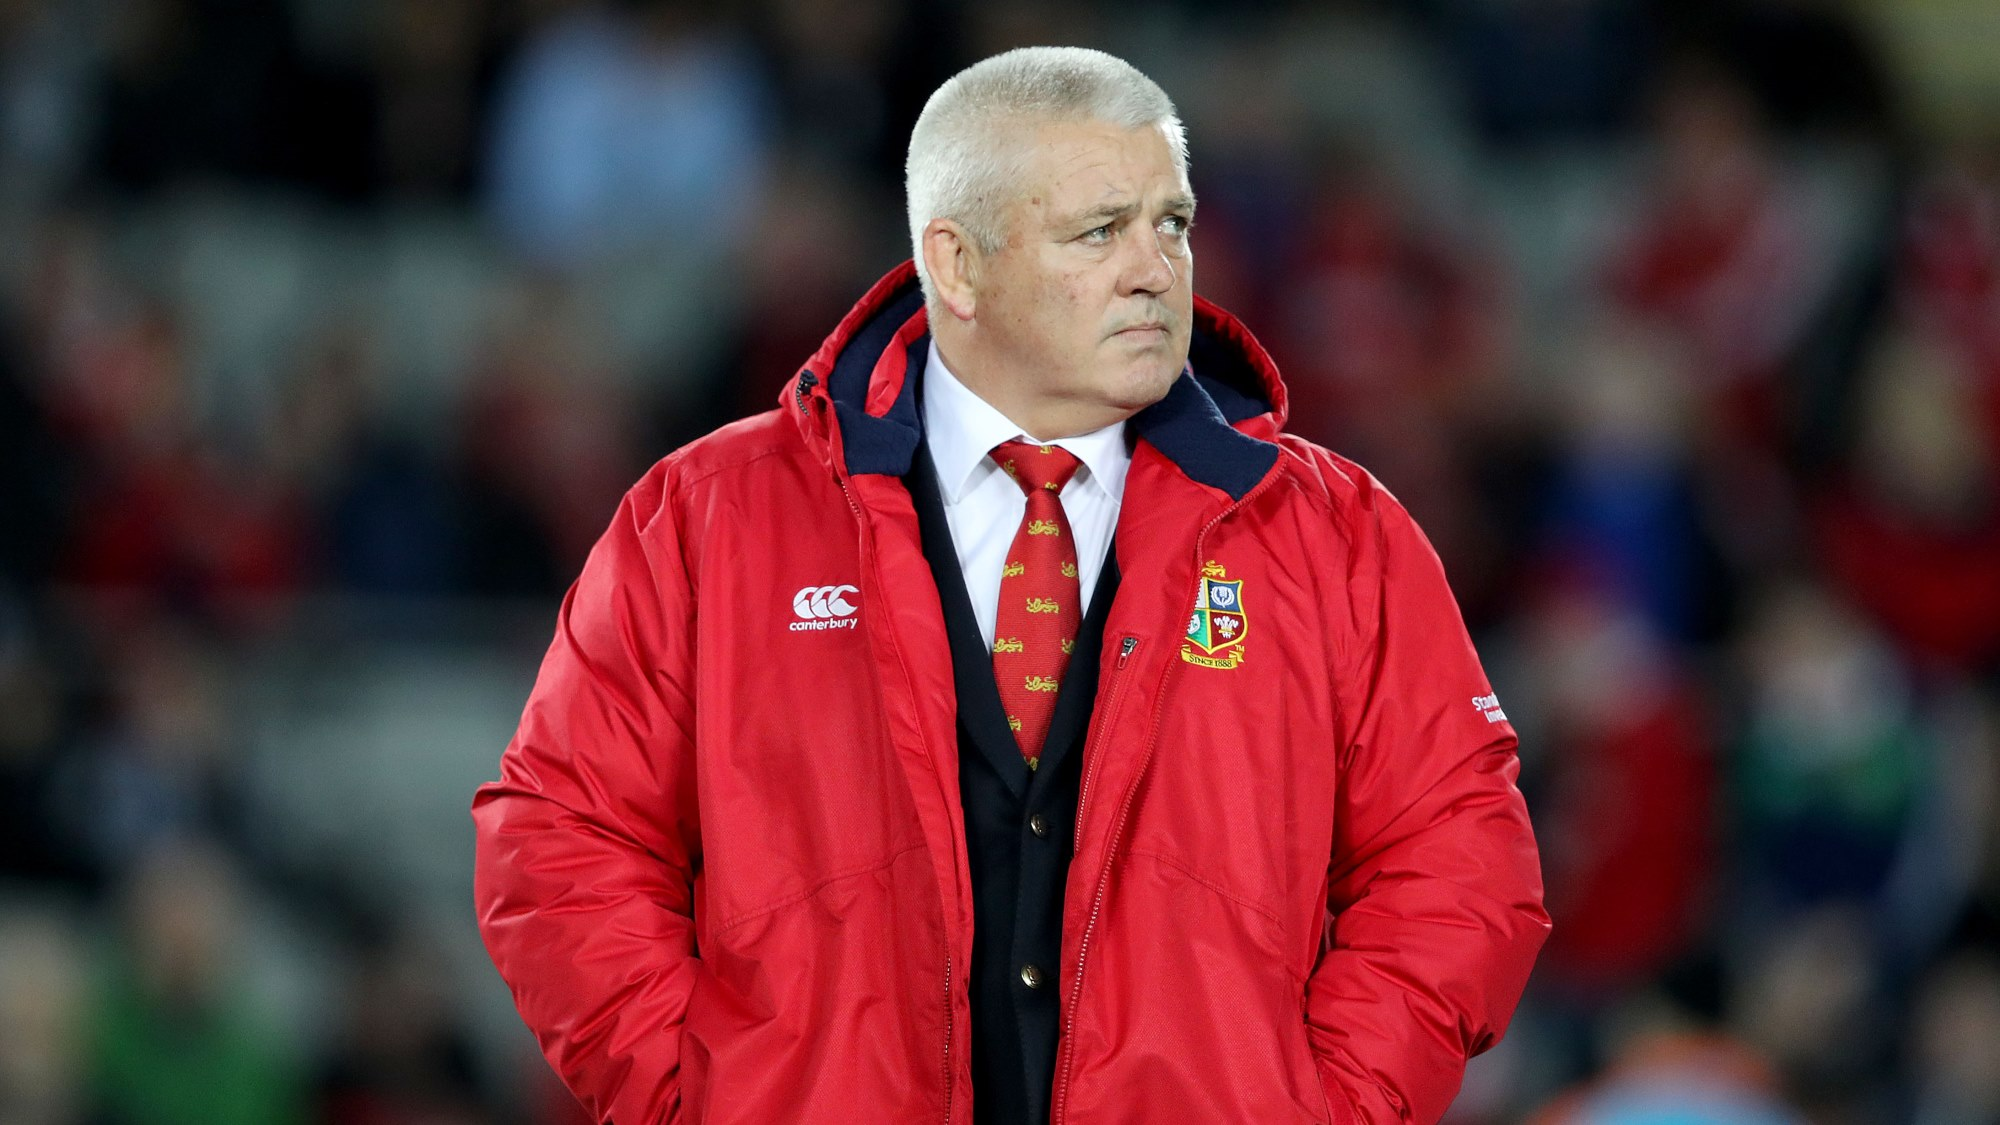 Gatland proud of playing squad and backroom staff after great series